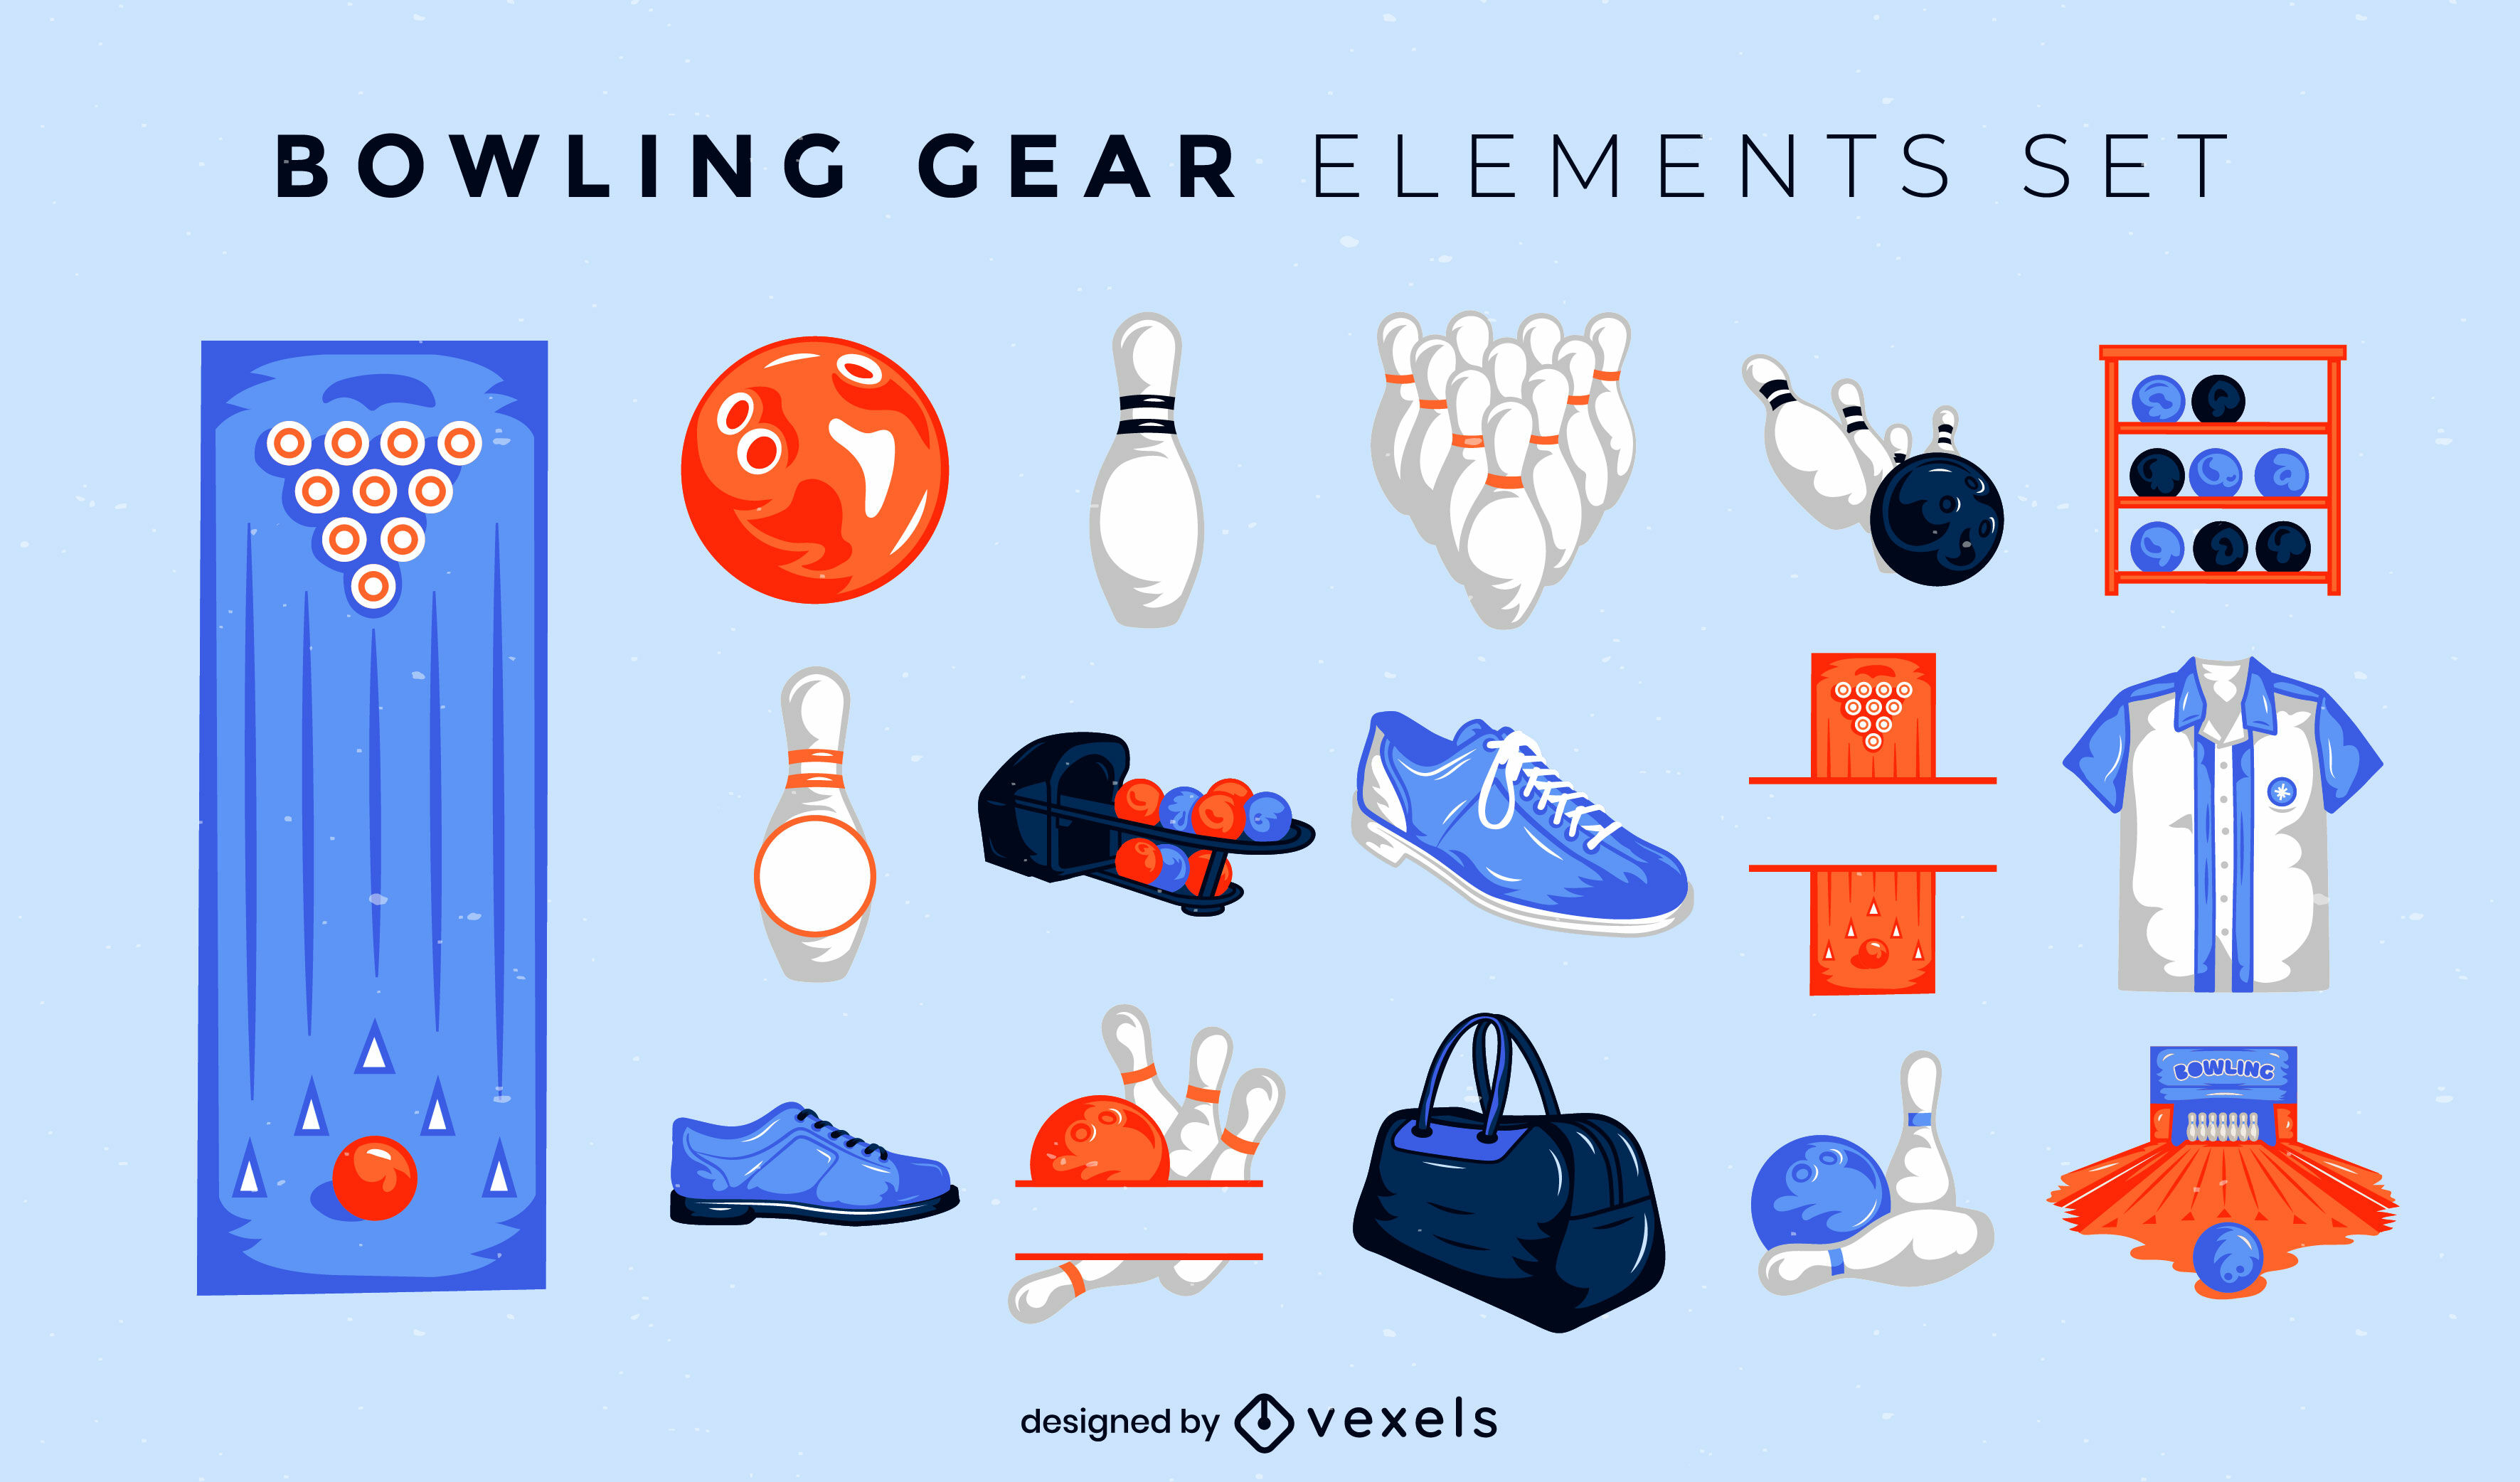 Bowling gear illustrated elements set